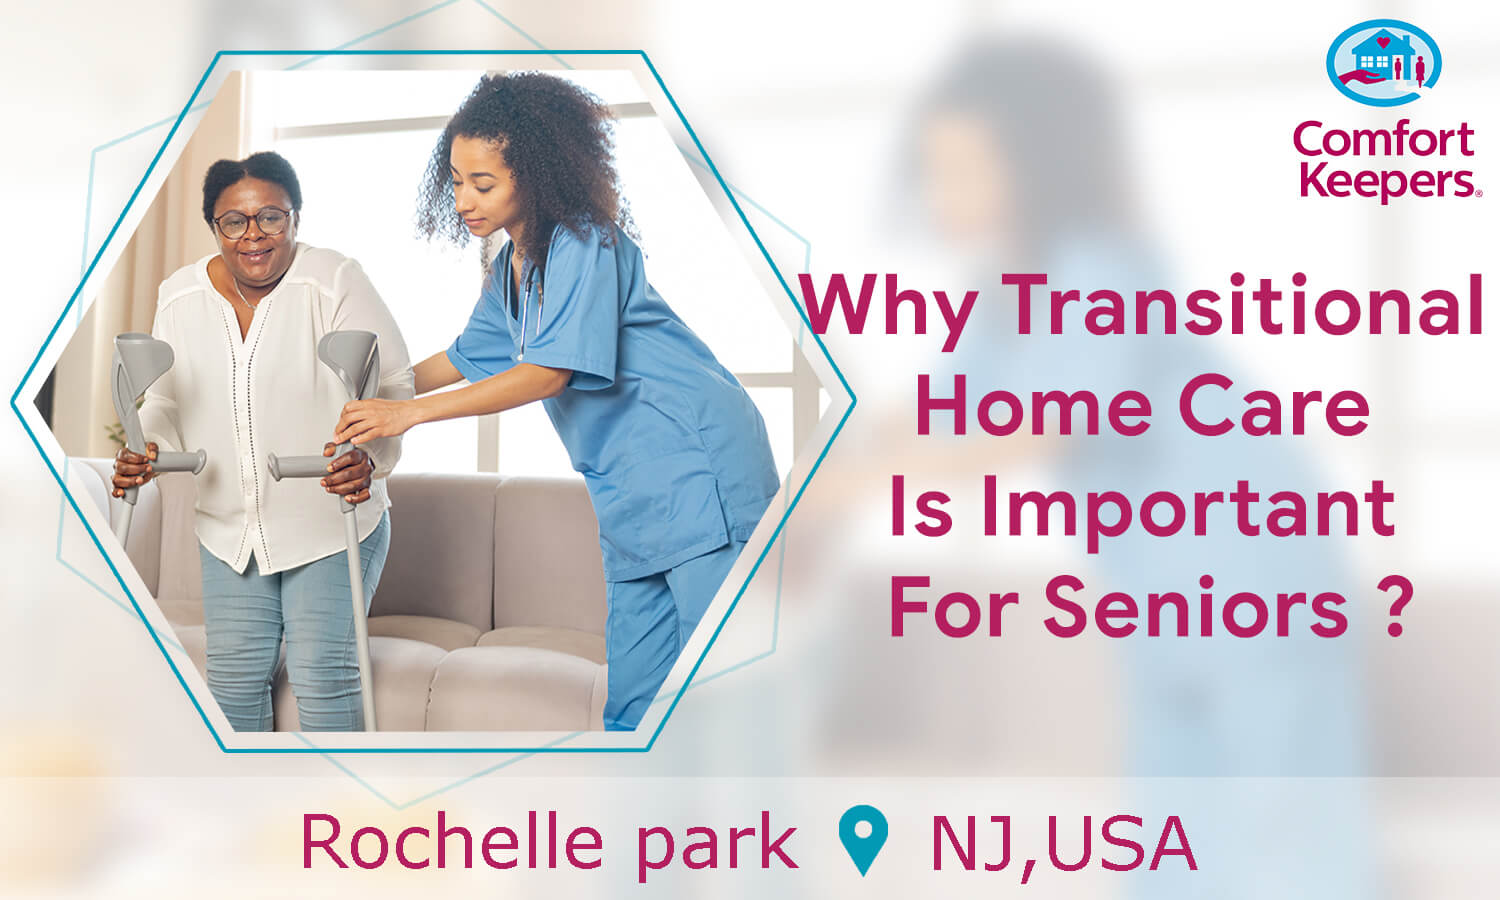 importance-of-transitional-home-care-nj-usa